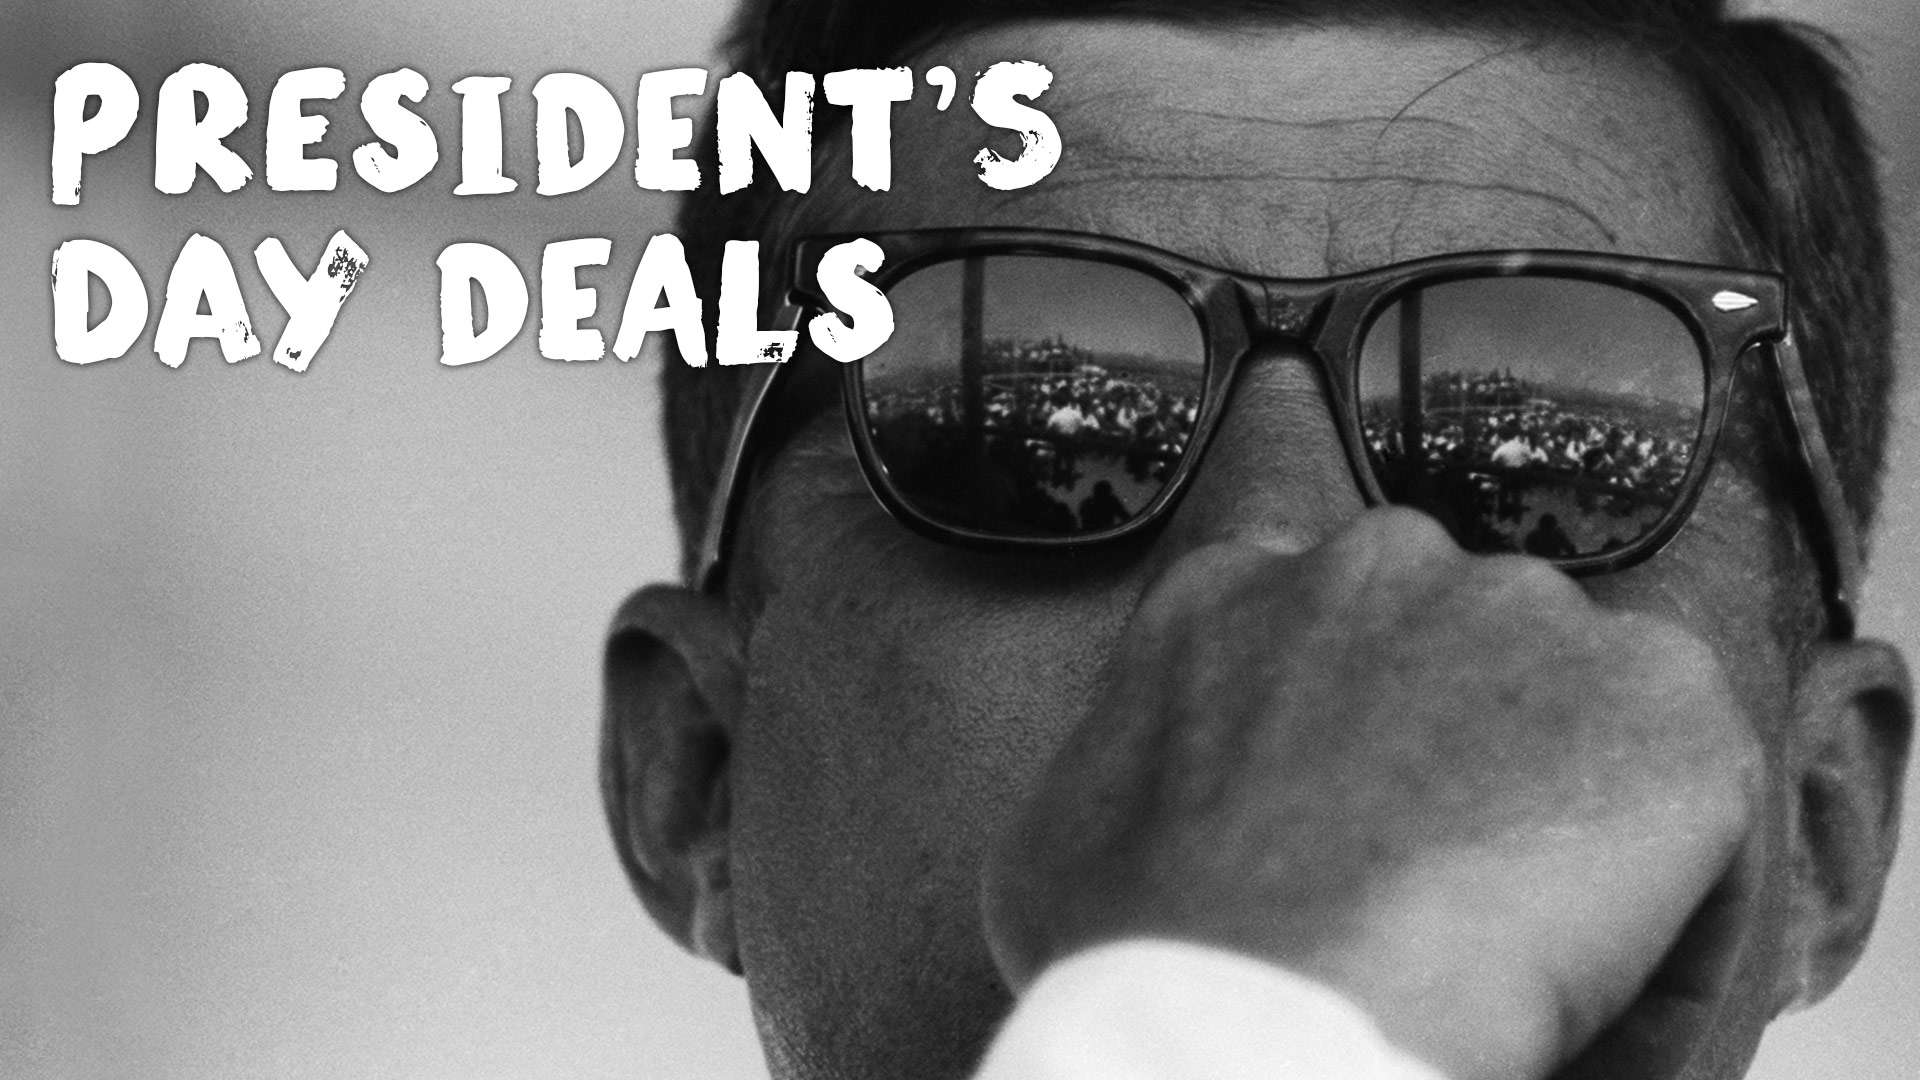 Presidents' Day can be a great time to buy a car thanks to holiday deals on a variety of new cars. Promos are off to a slow start, but expect to see a mix of financing specials, cashback offers and lease deals prior to February